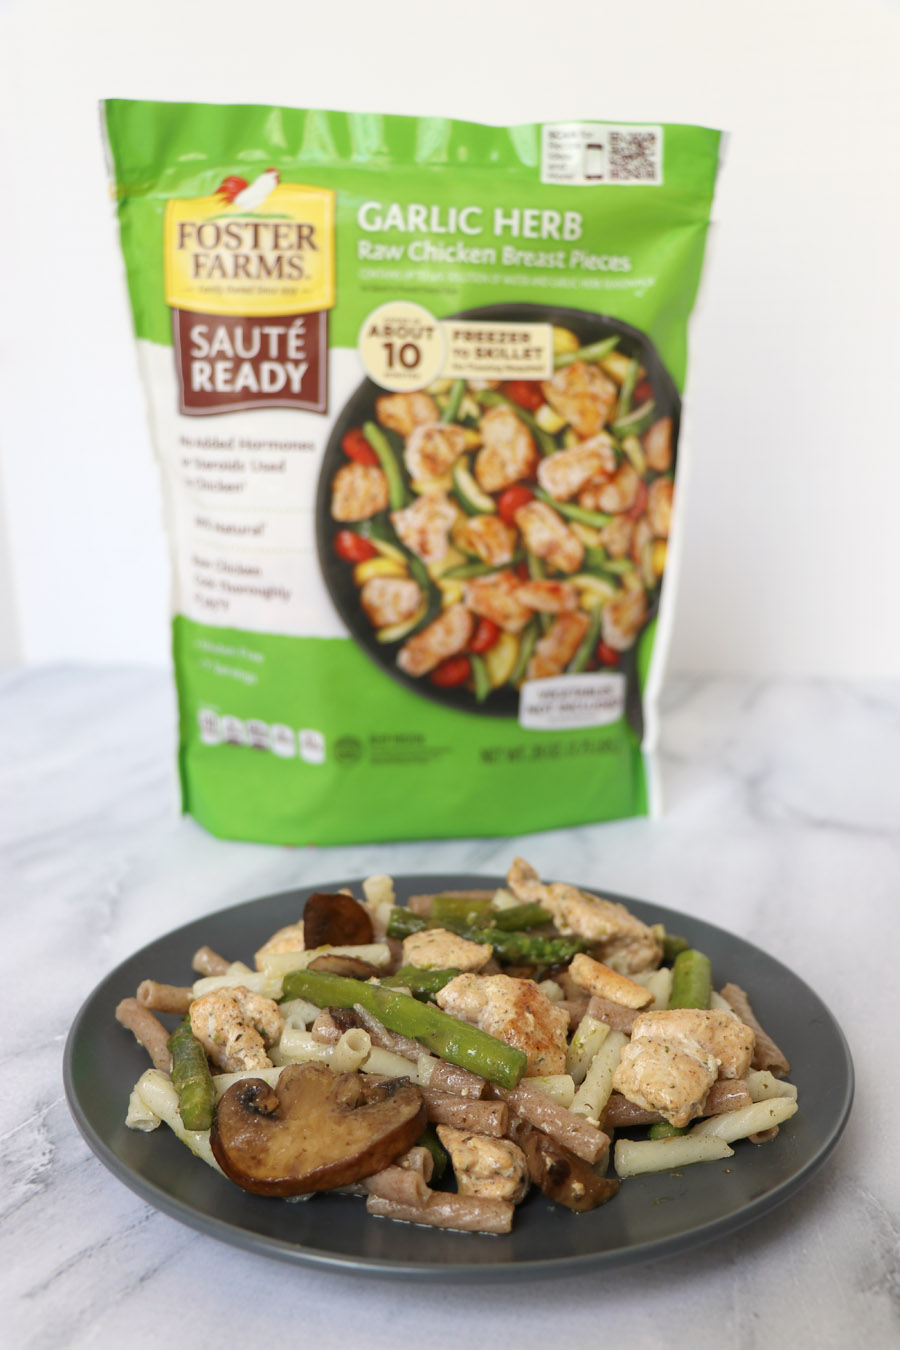 Foster Farms Sauté Ready Chicken Easy Dinners - garlic herb